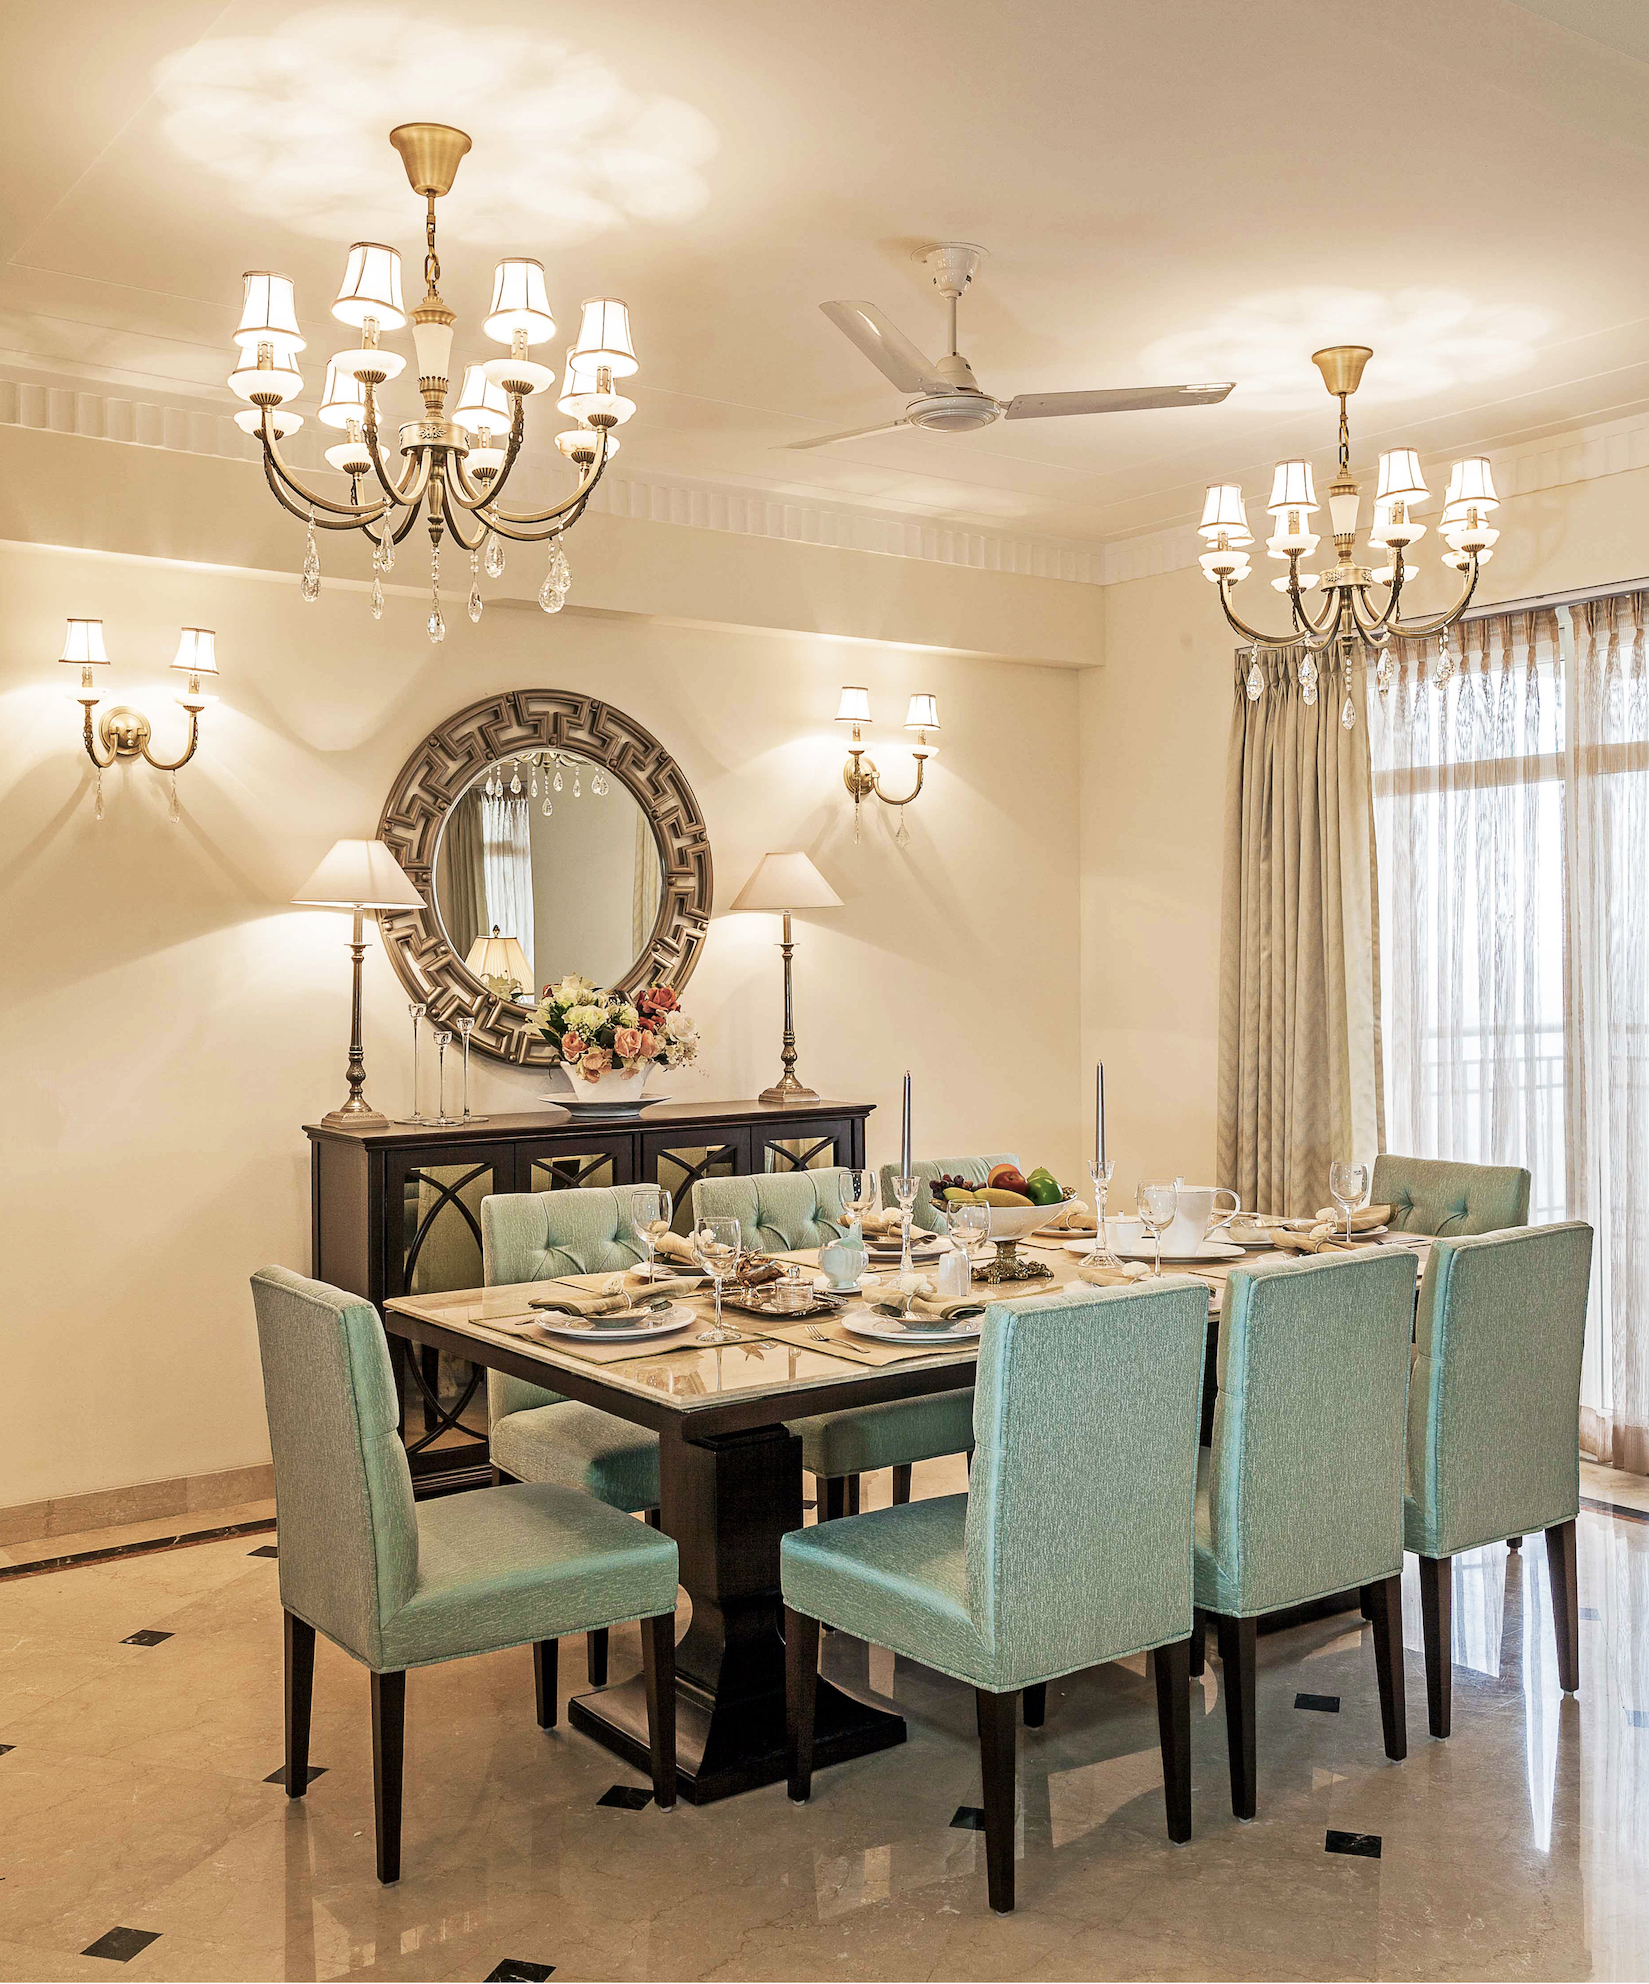 N Style Designs On Transitional Design: House Tour: Inside A Delhi 4BHK With Timeless Transitional